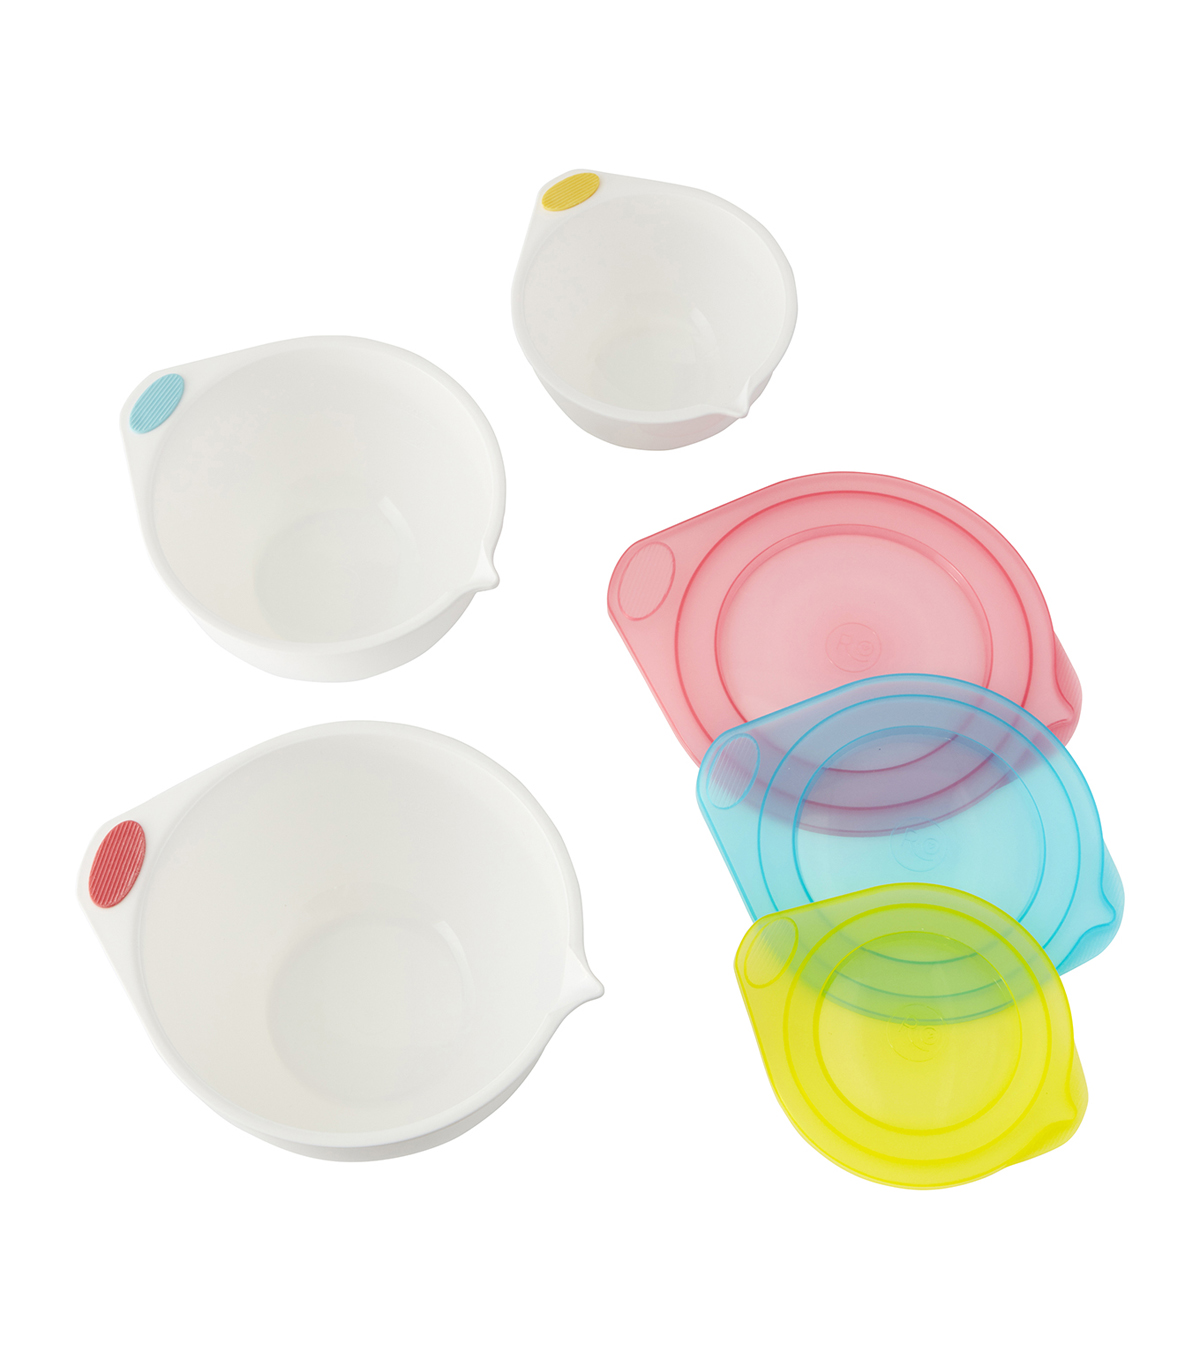 Rosanna Pansino By Wilton 6pc Covered Mixing Bowl Set